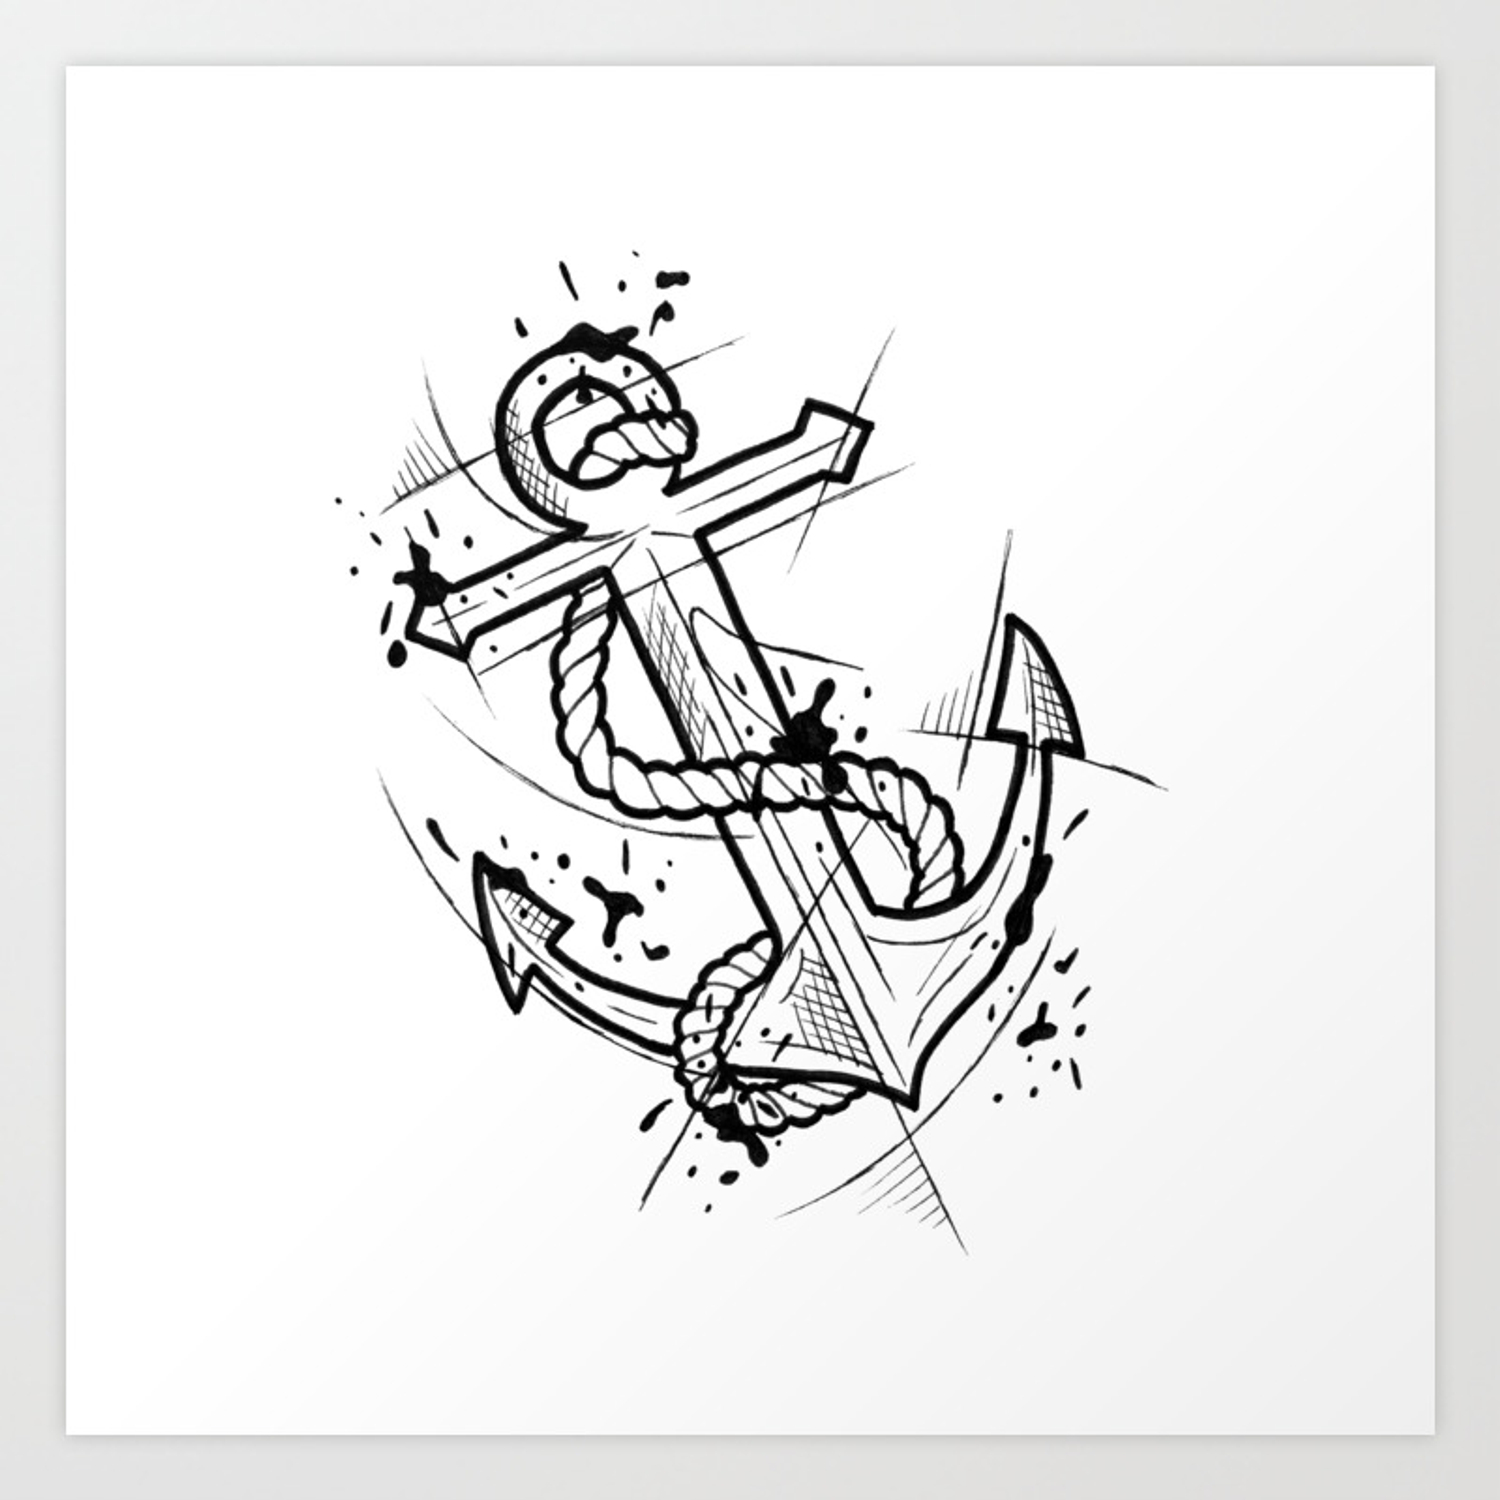 Anchor handmade drawing made in pencil and ink tattoo sketch tattoo flash blackwork art print